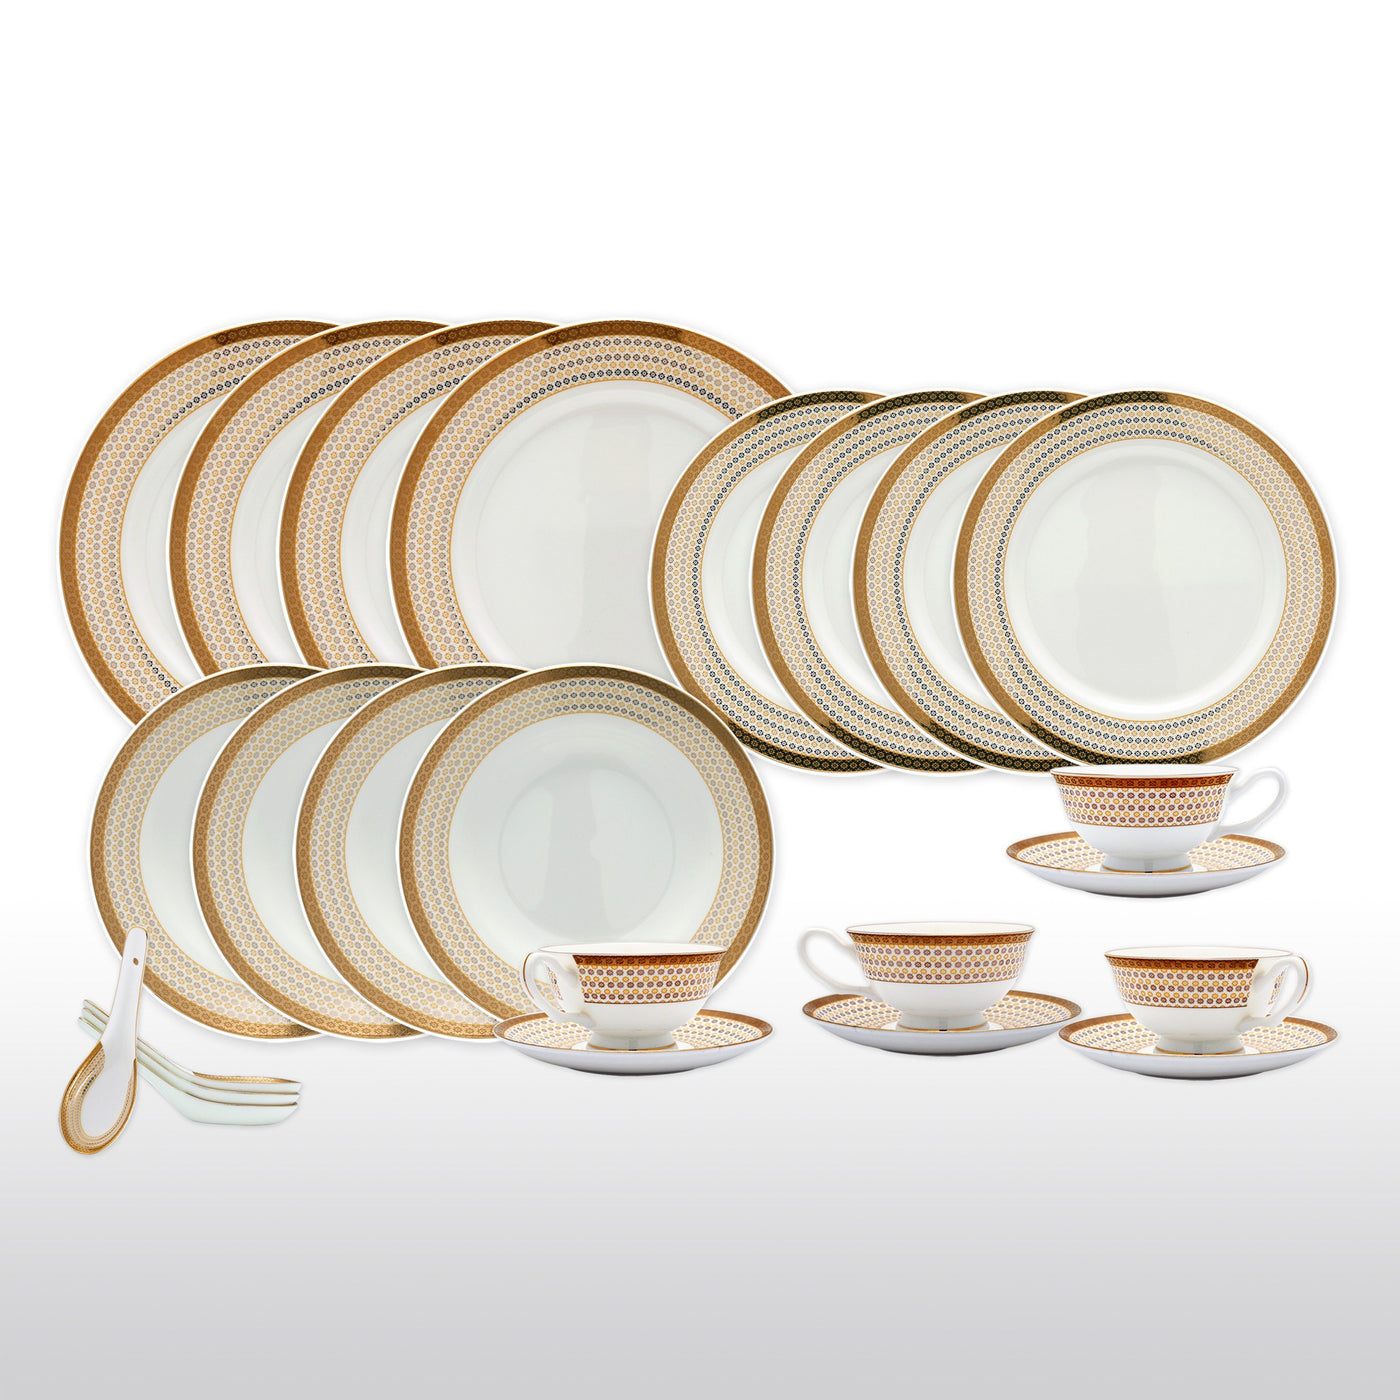 Dinnerwares - Bone China 24 Piece Dinnerware Set Diamonds And Gold Border Service For 4 ...  sc 1 st  Homenique.net & Fine Bone China Dinnerware Set - 24 Piece Service for 4 - Dotted - with Dinner Plates Salad Plates Soup Bowls Cups Saucers u0026 Spoons